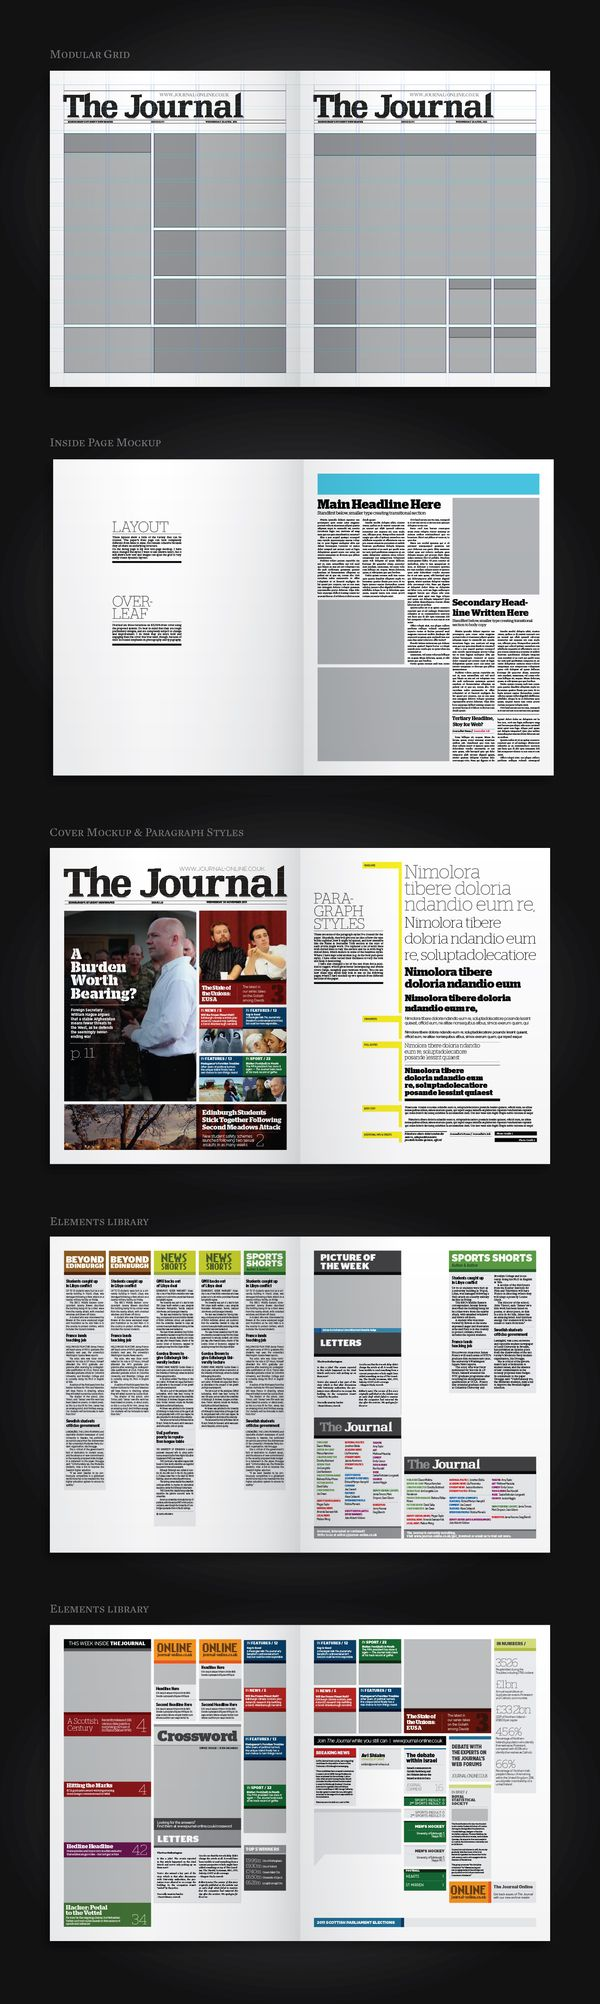 The Journal: Newspaper Redesign on Editorial Design Served